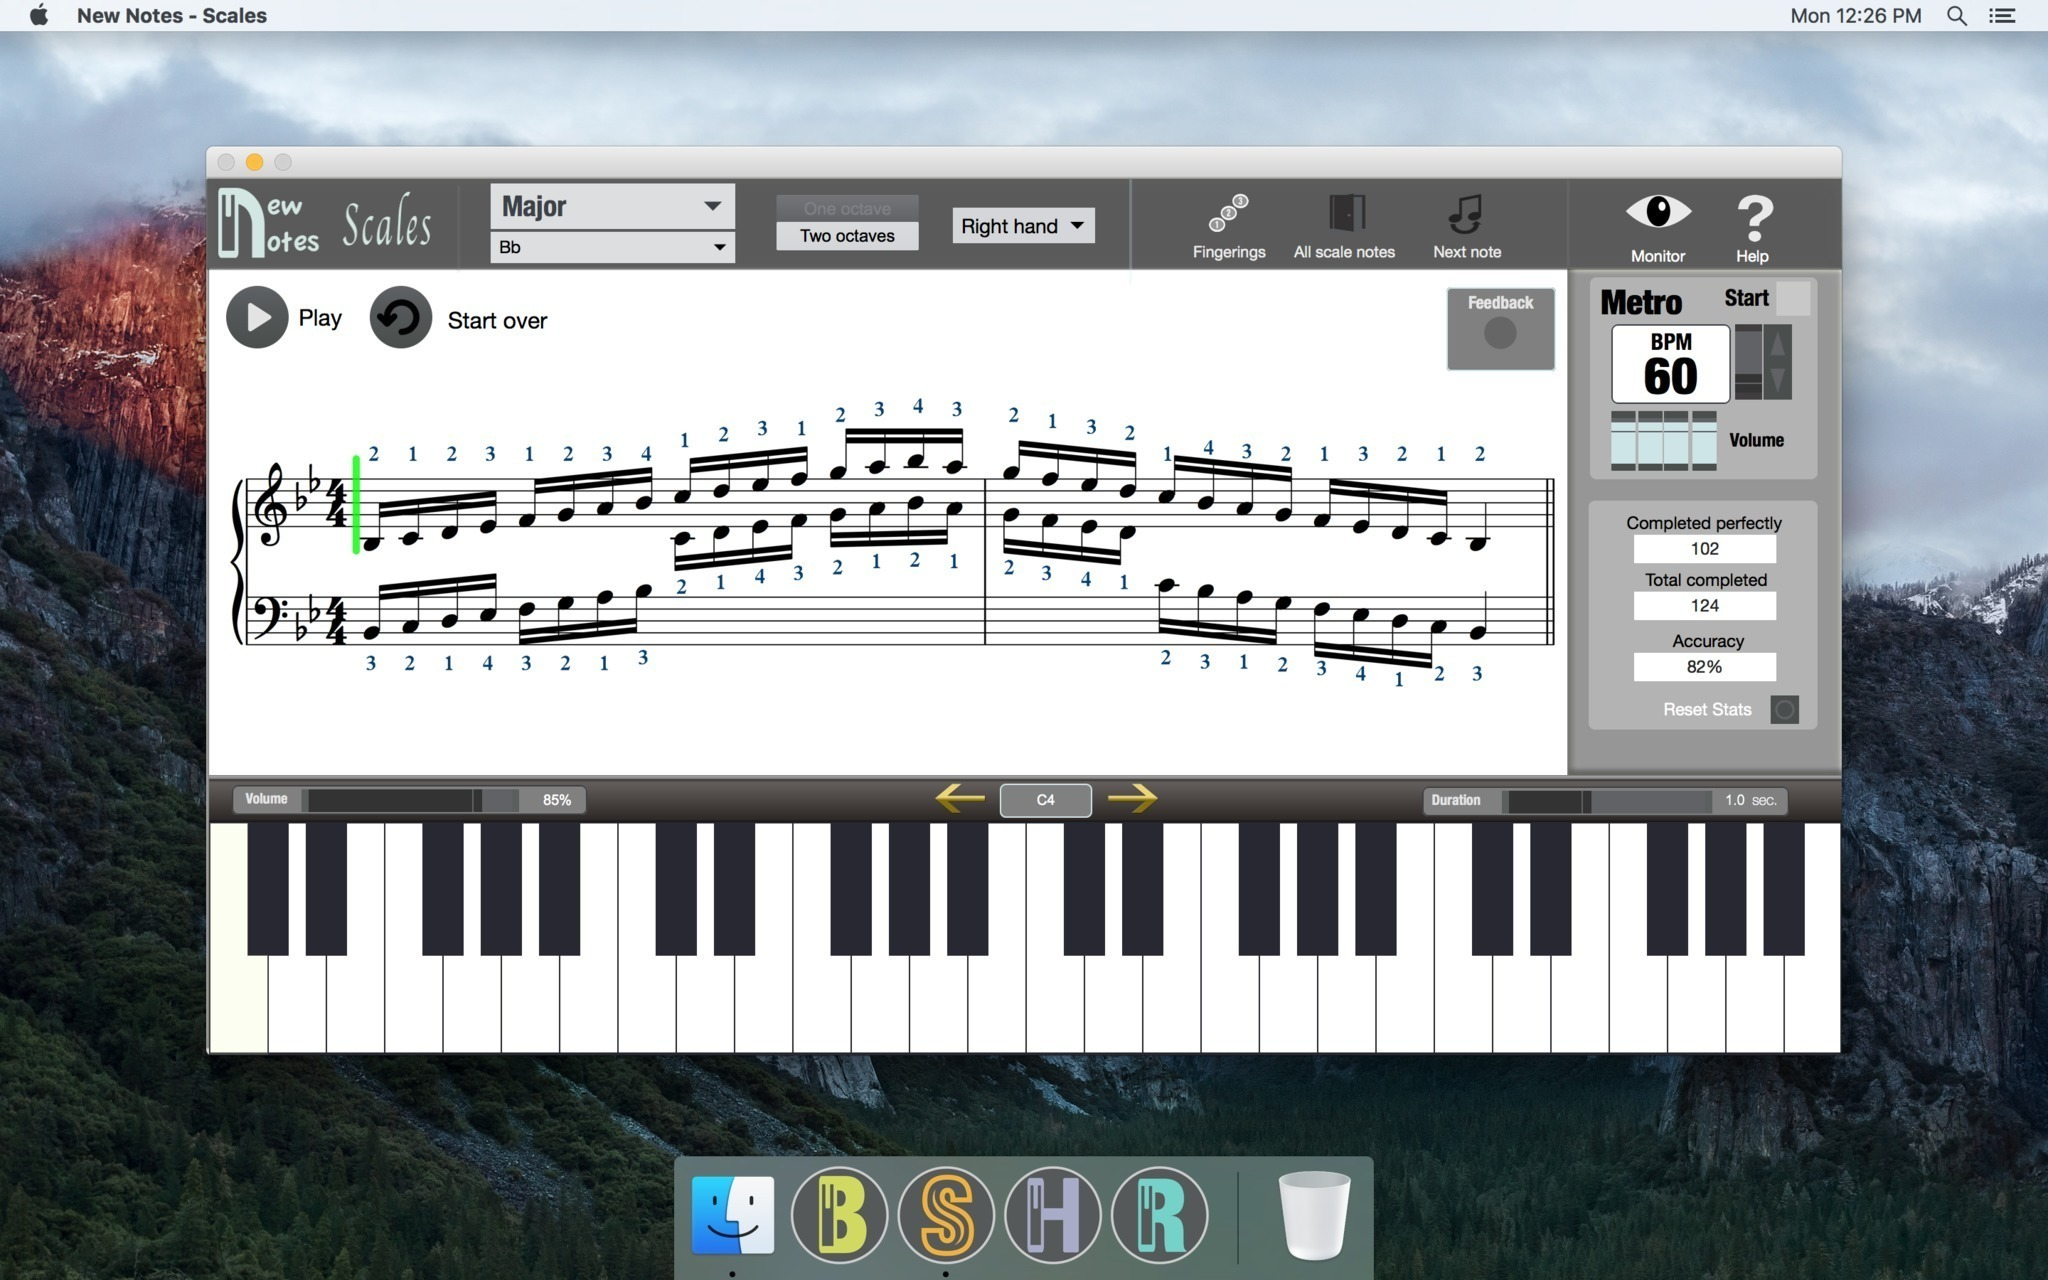 Screenshot 1 for New Notes - Scales